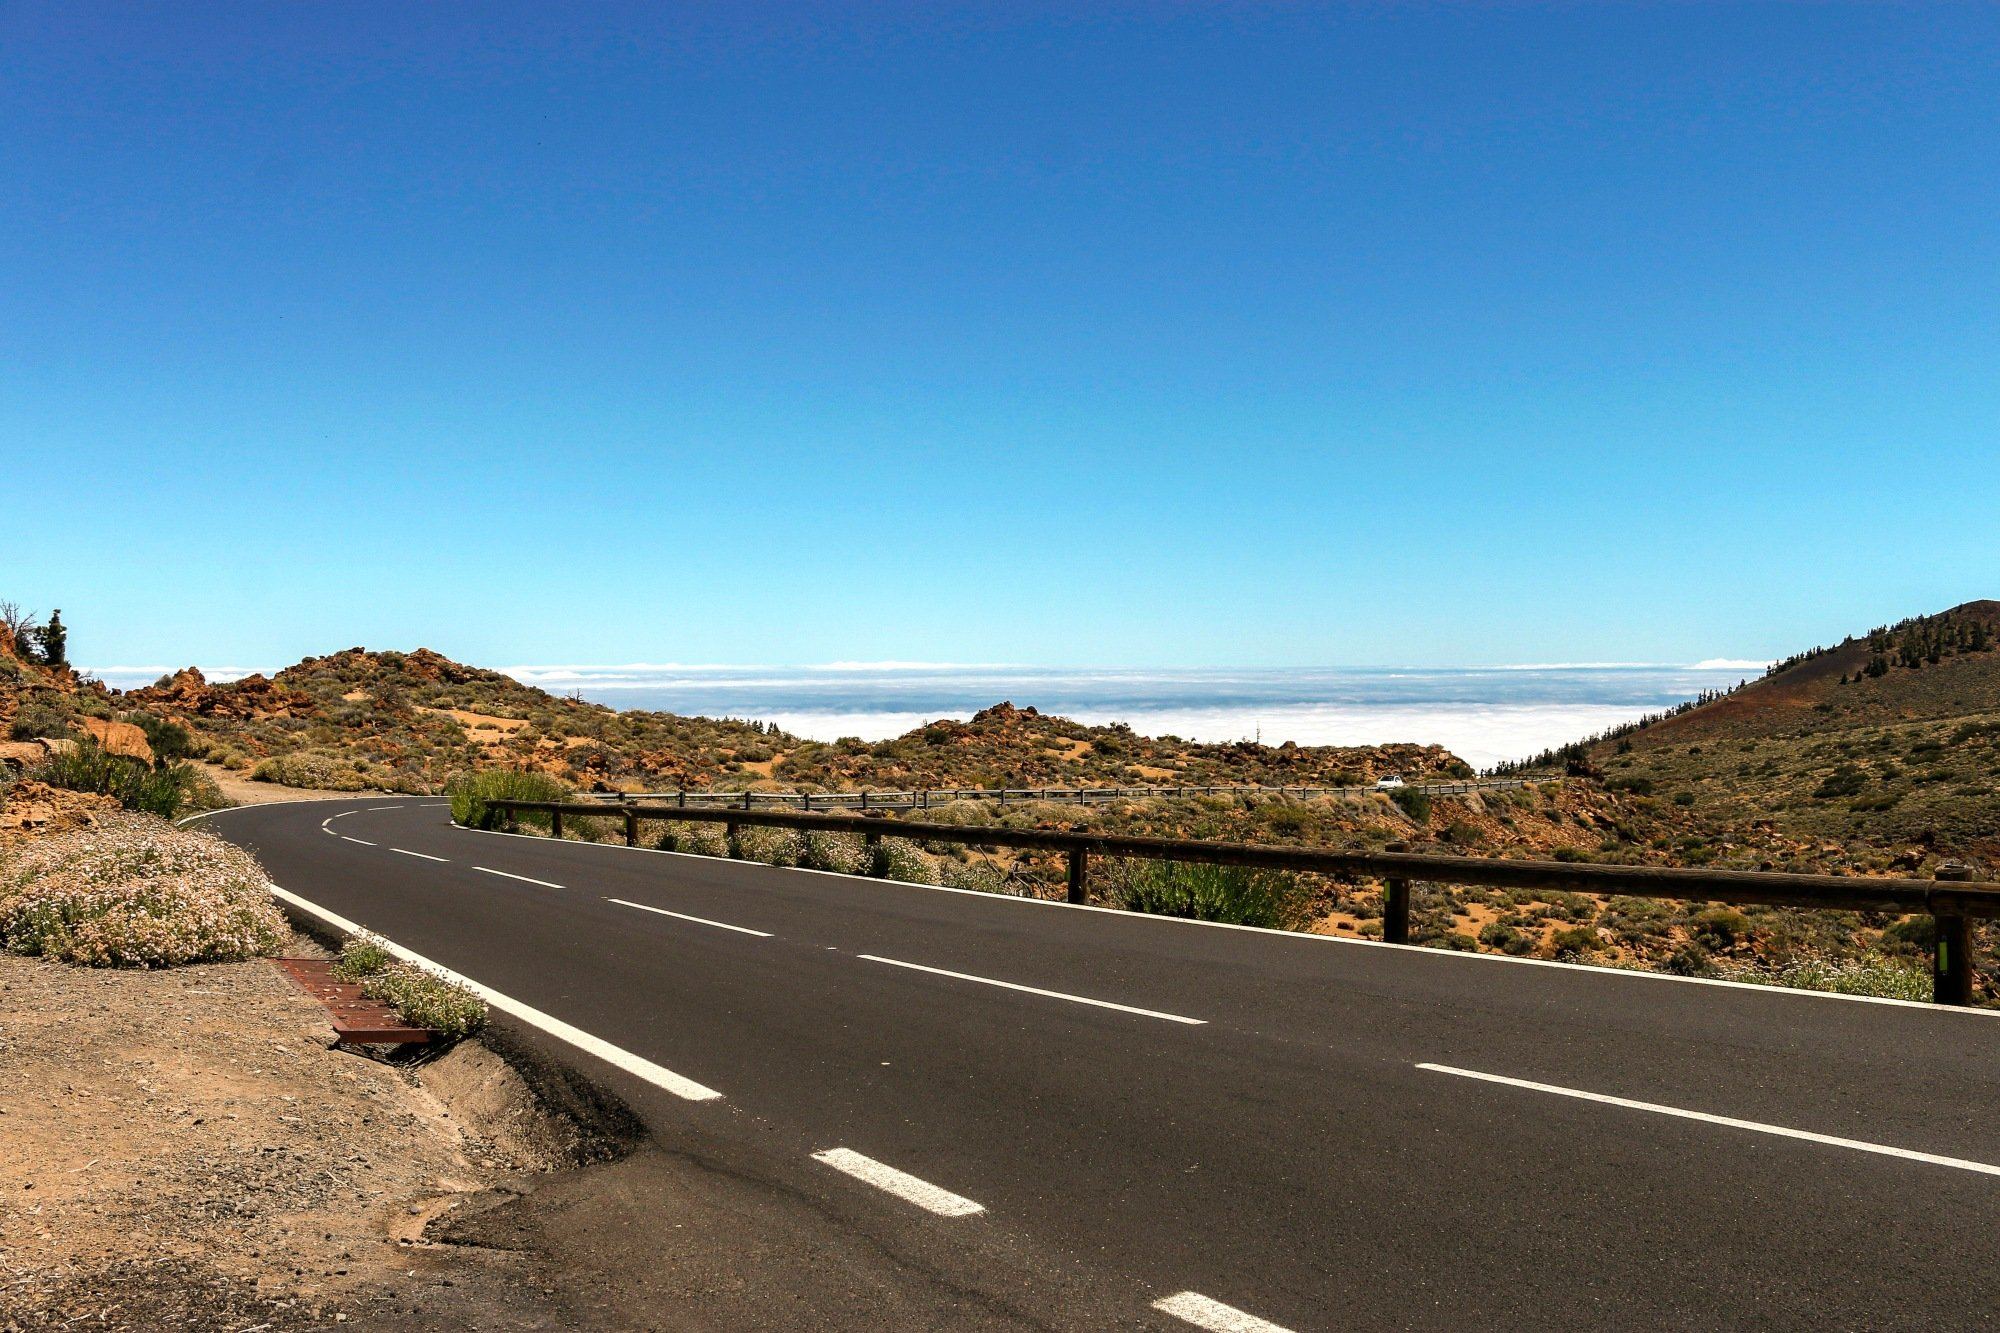 Our favourite cycling holiday destination, number 2 - Tenerife